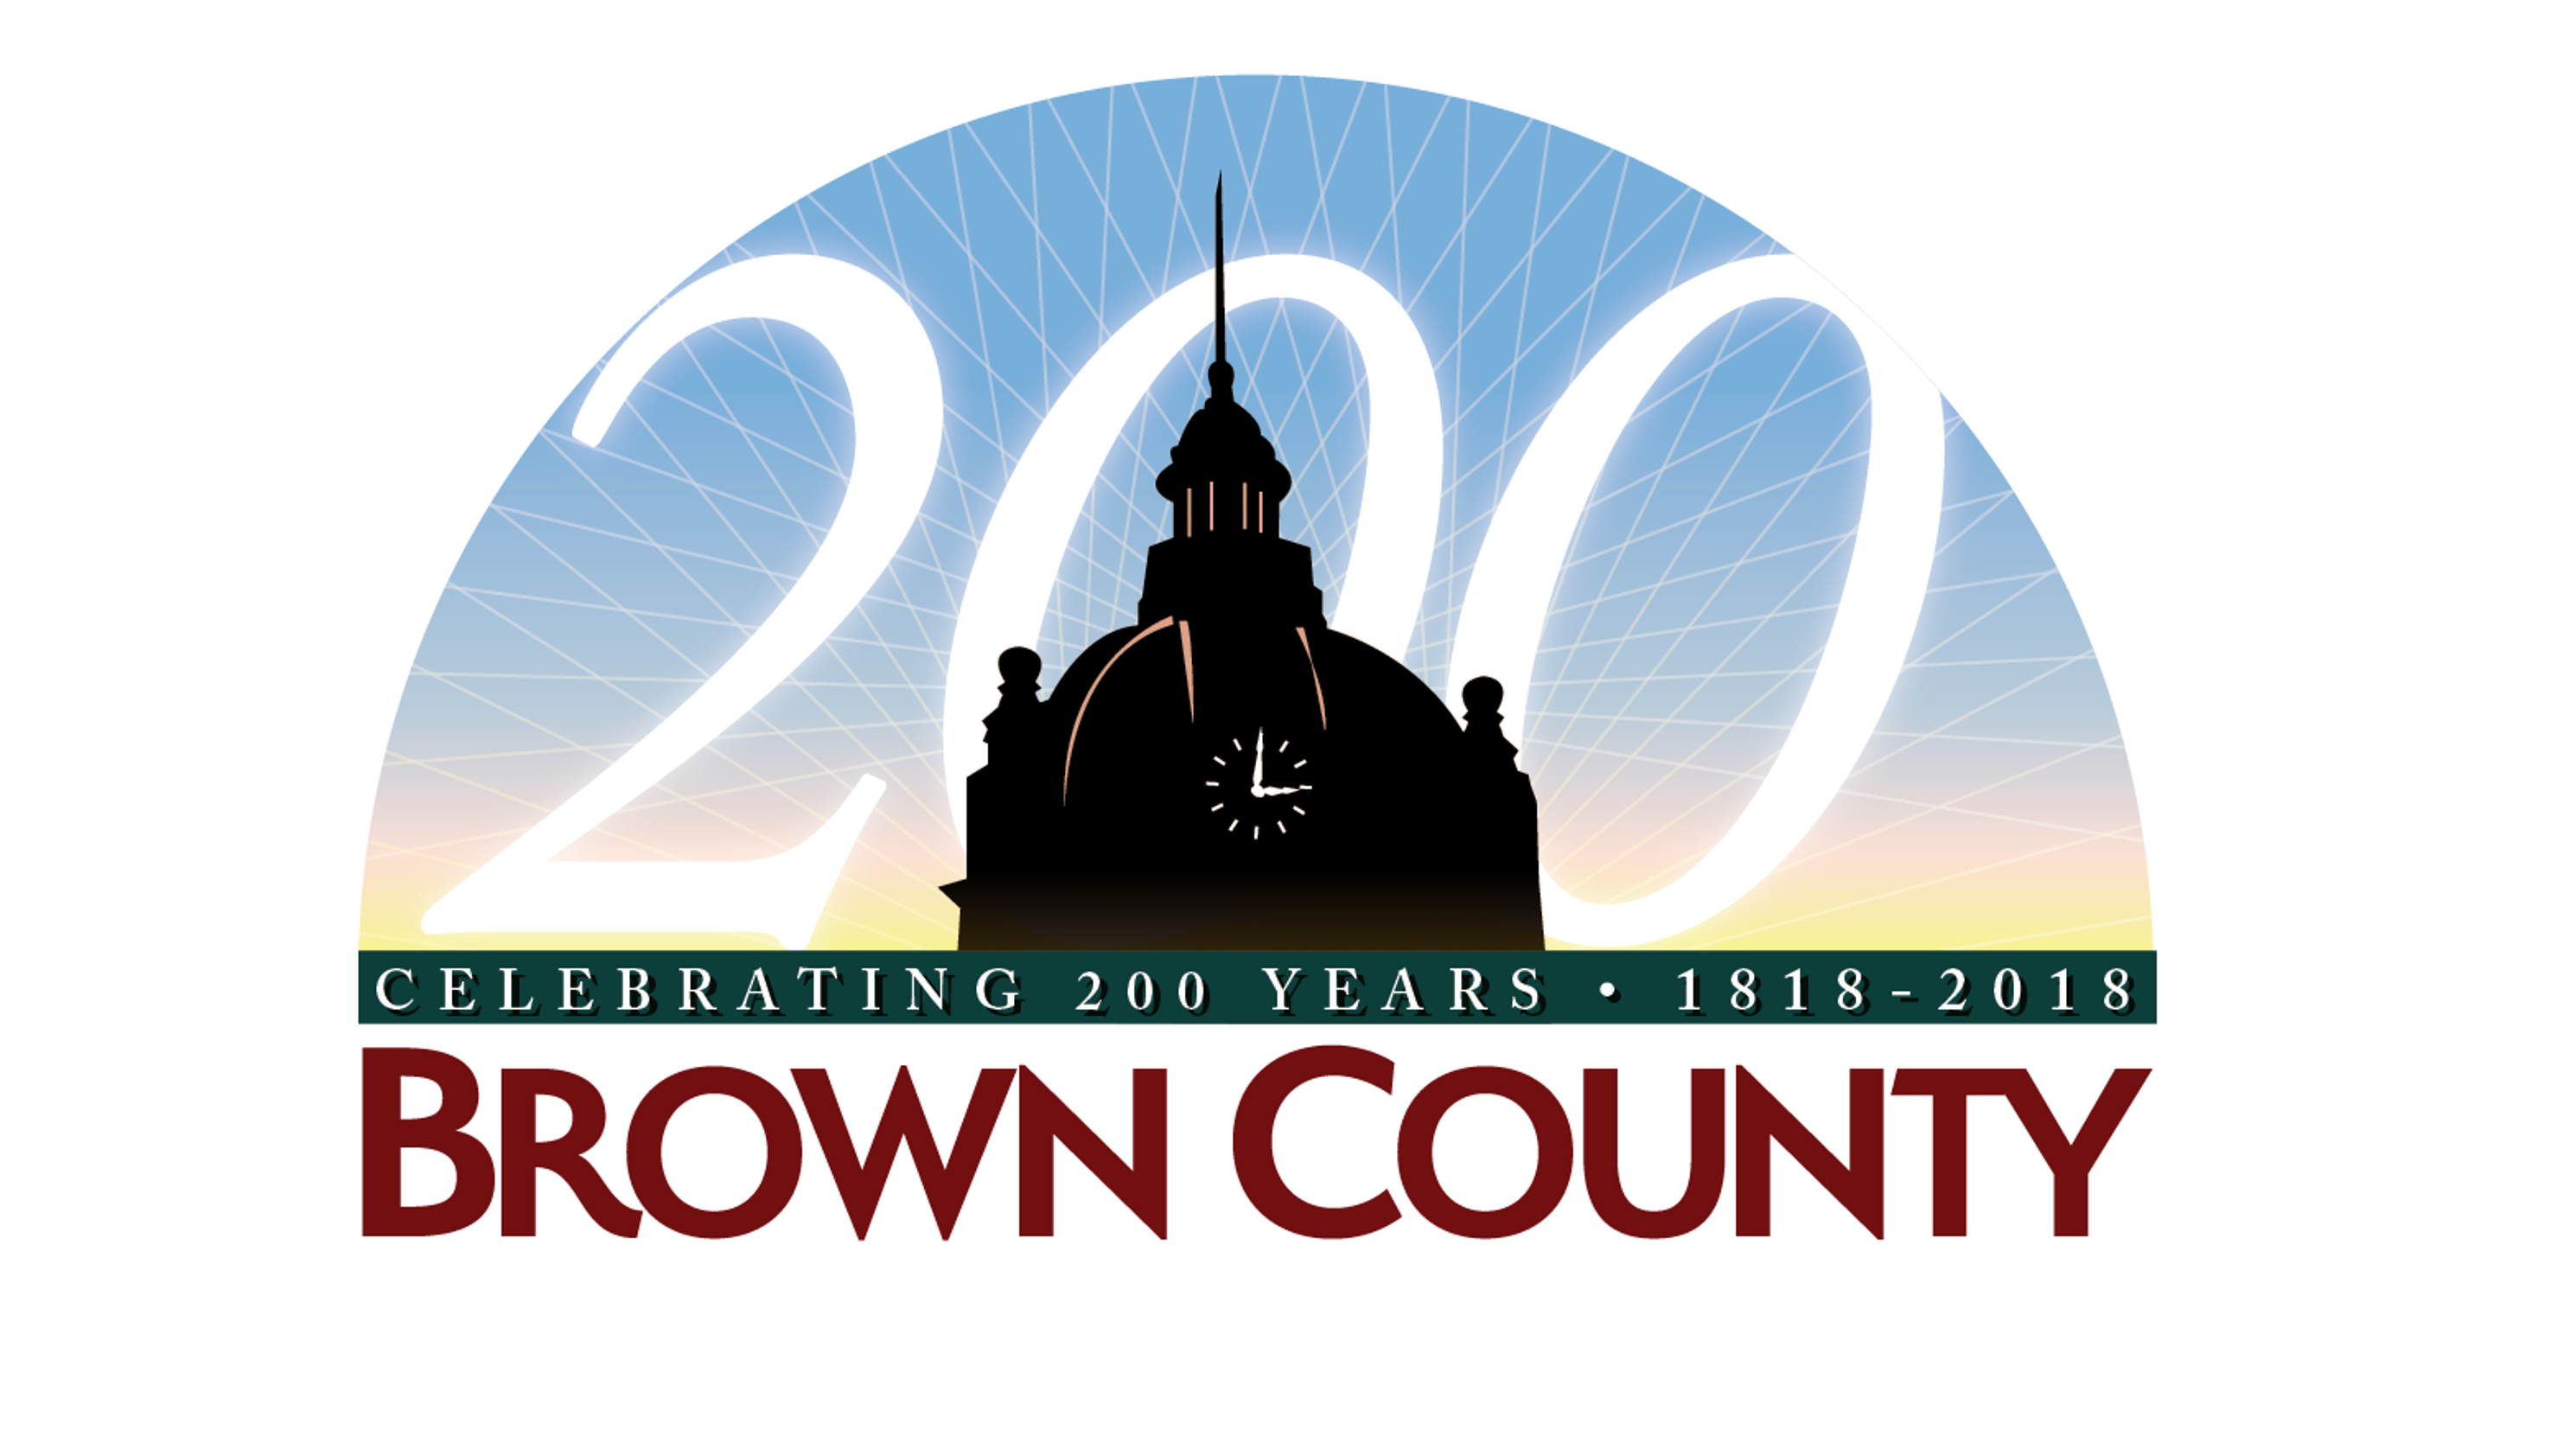 Owi Treatment Court To Be Proposed In 2018 Brown County Budget